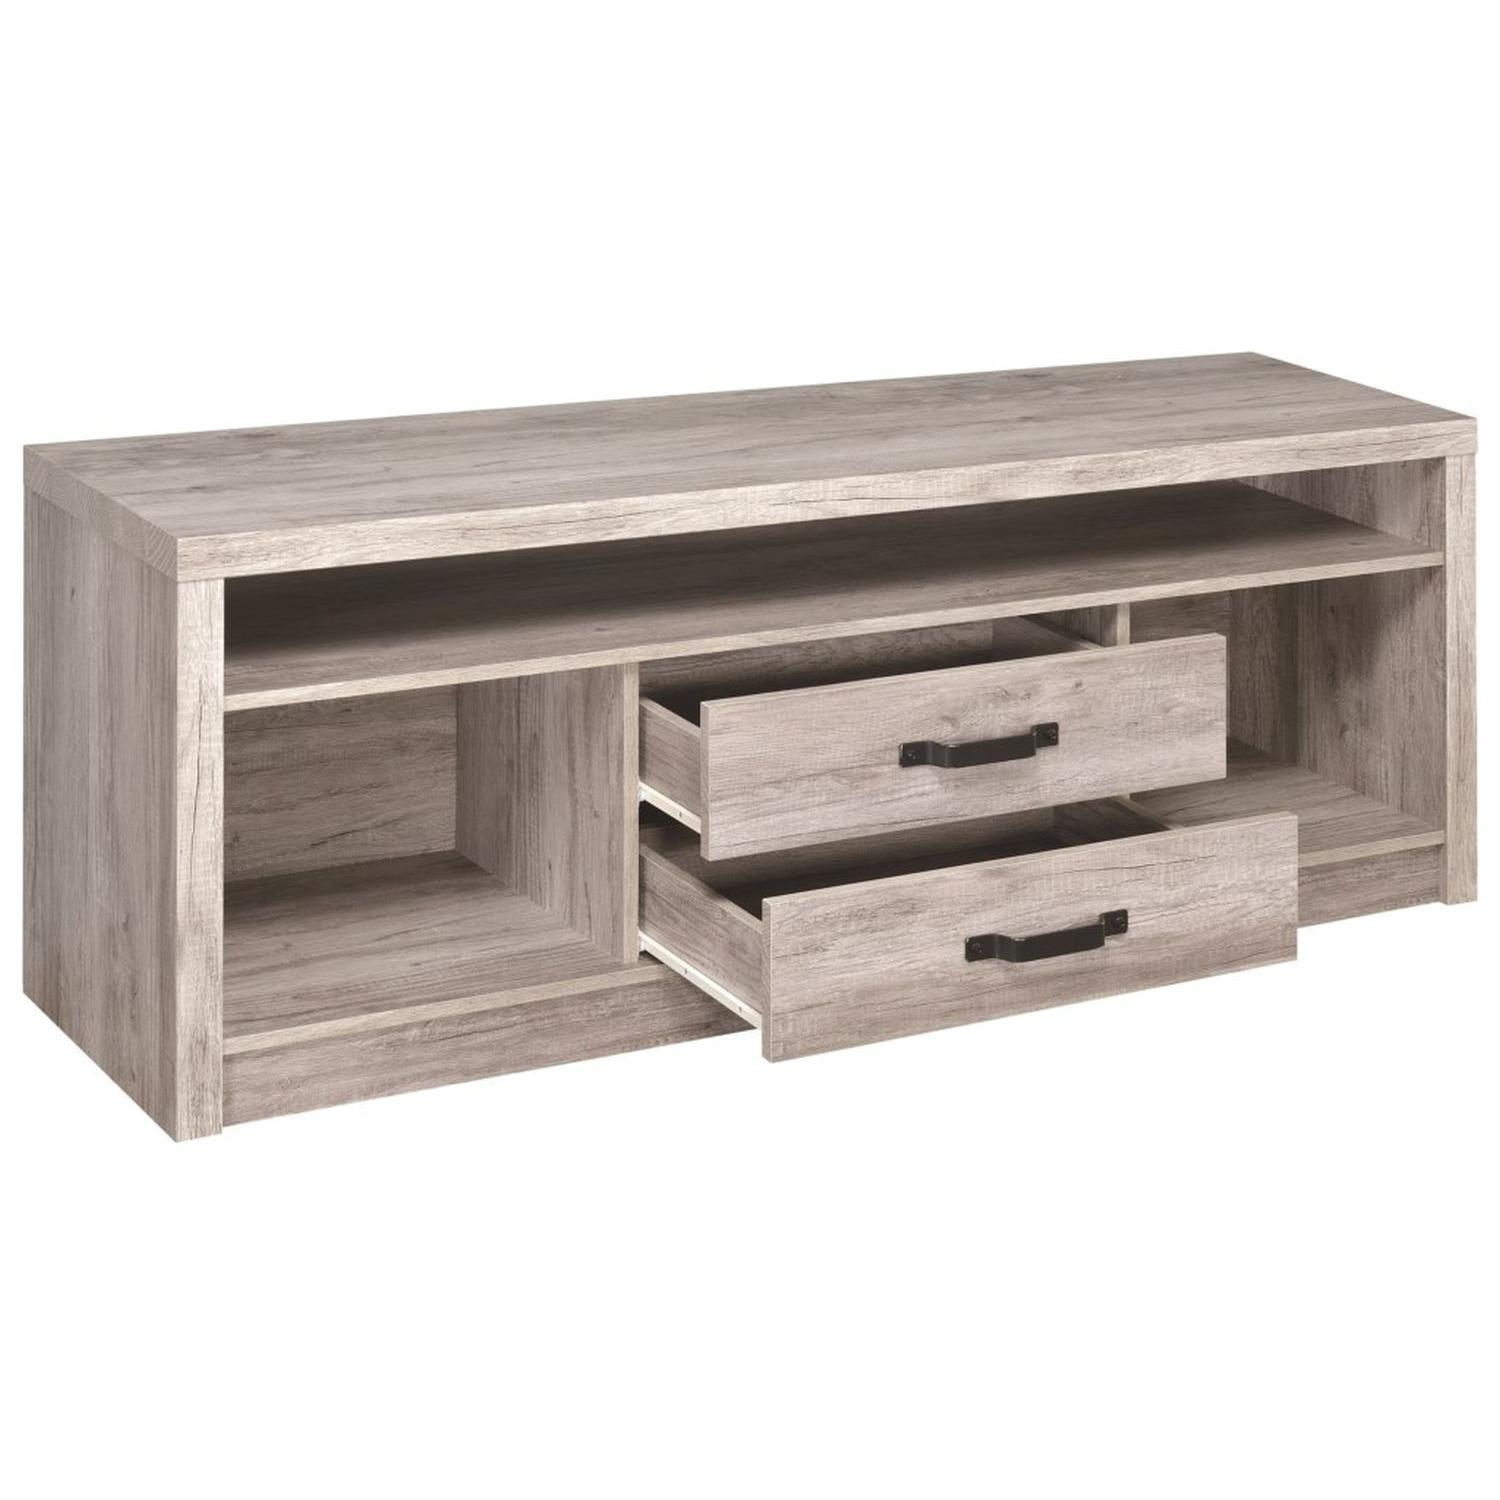 TV Stand In Rustic Oak Finish w/ 2 Cabinets & 2 Drawers - image-24